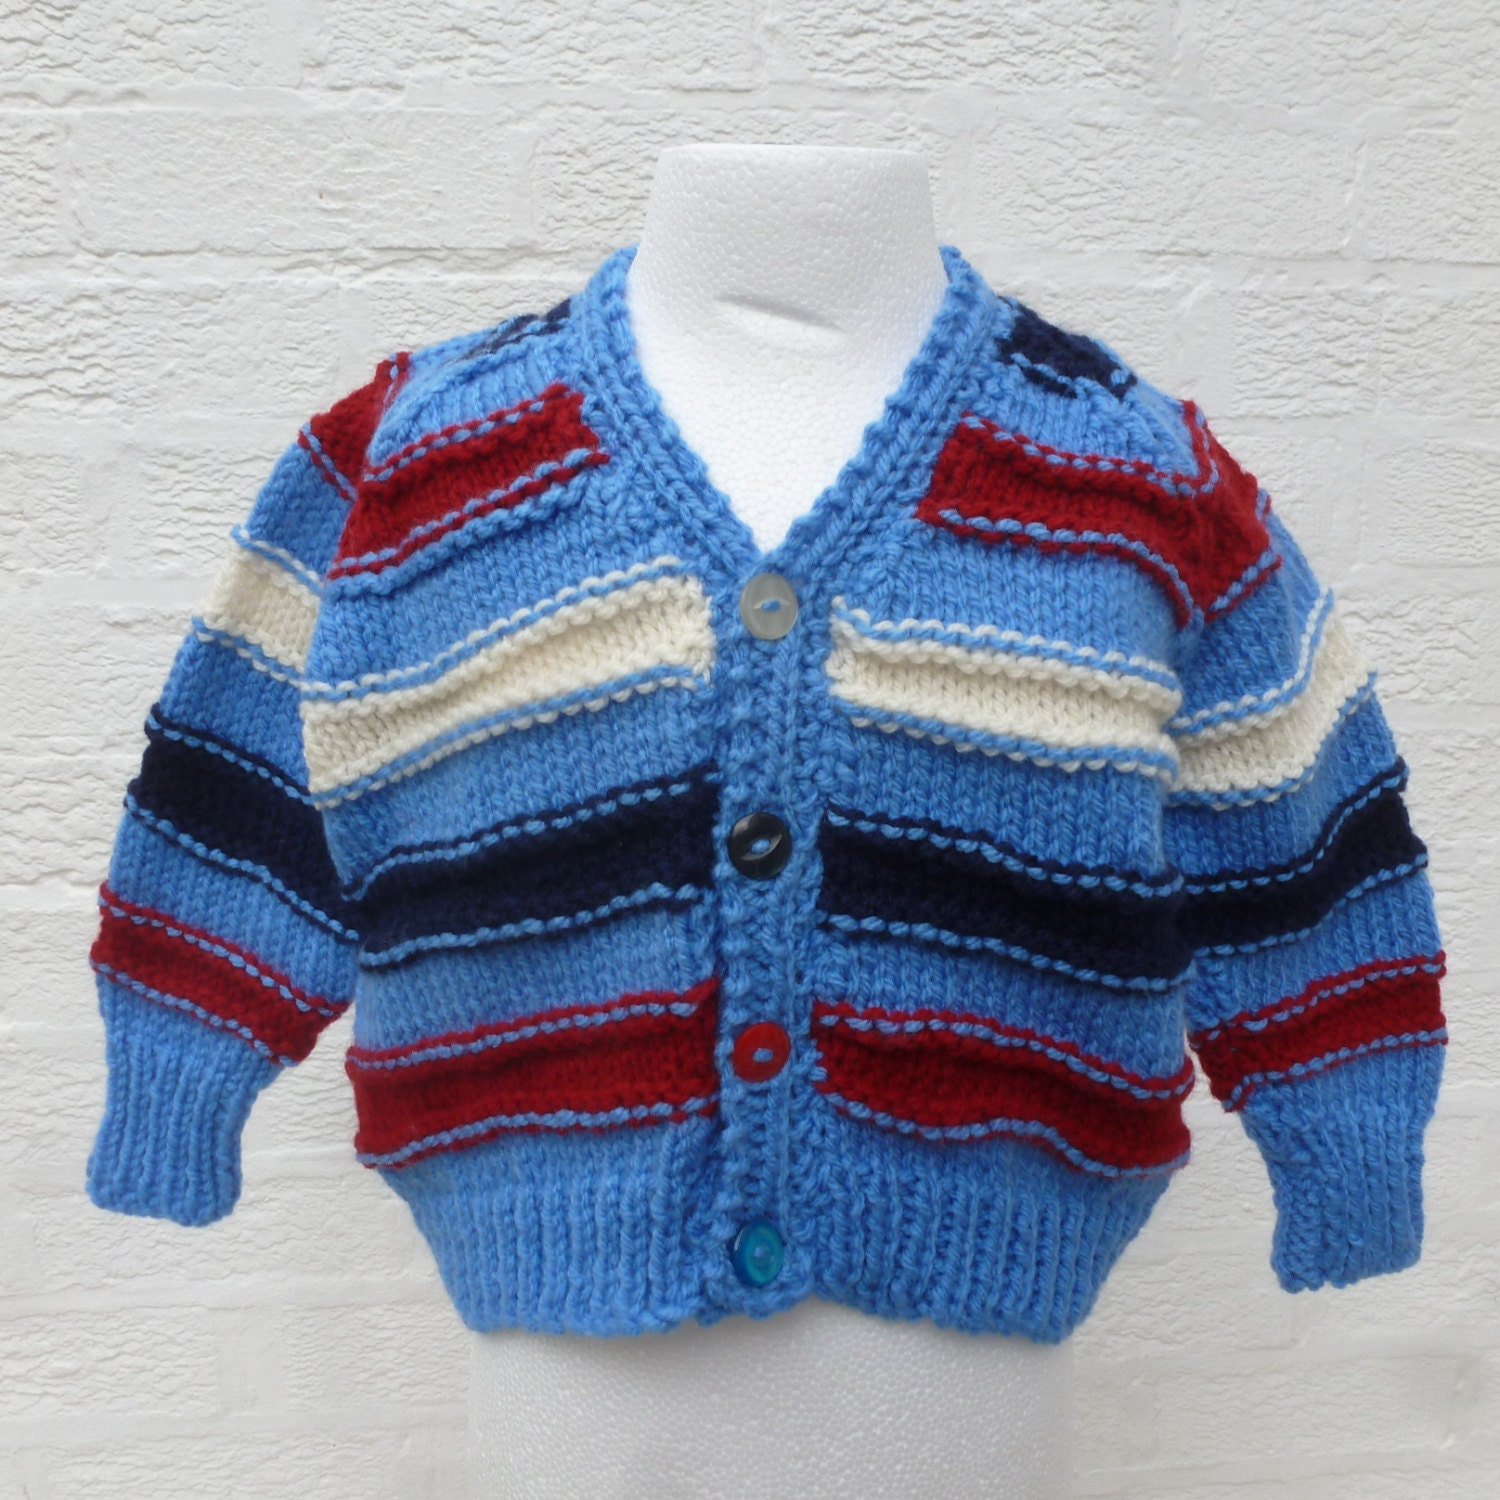 Blue cardigan boys handmade top vintage clothing kids sweater